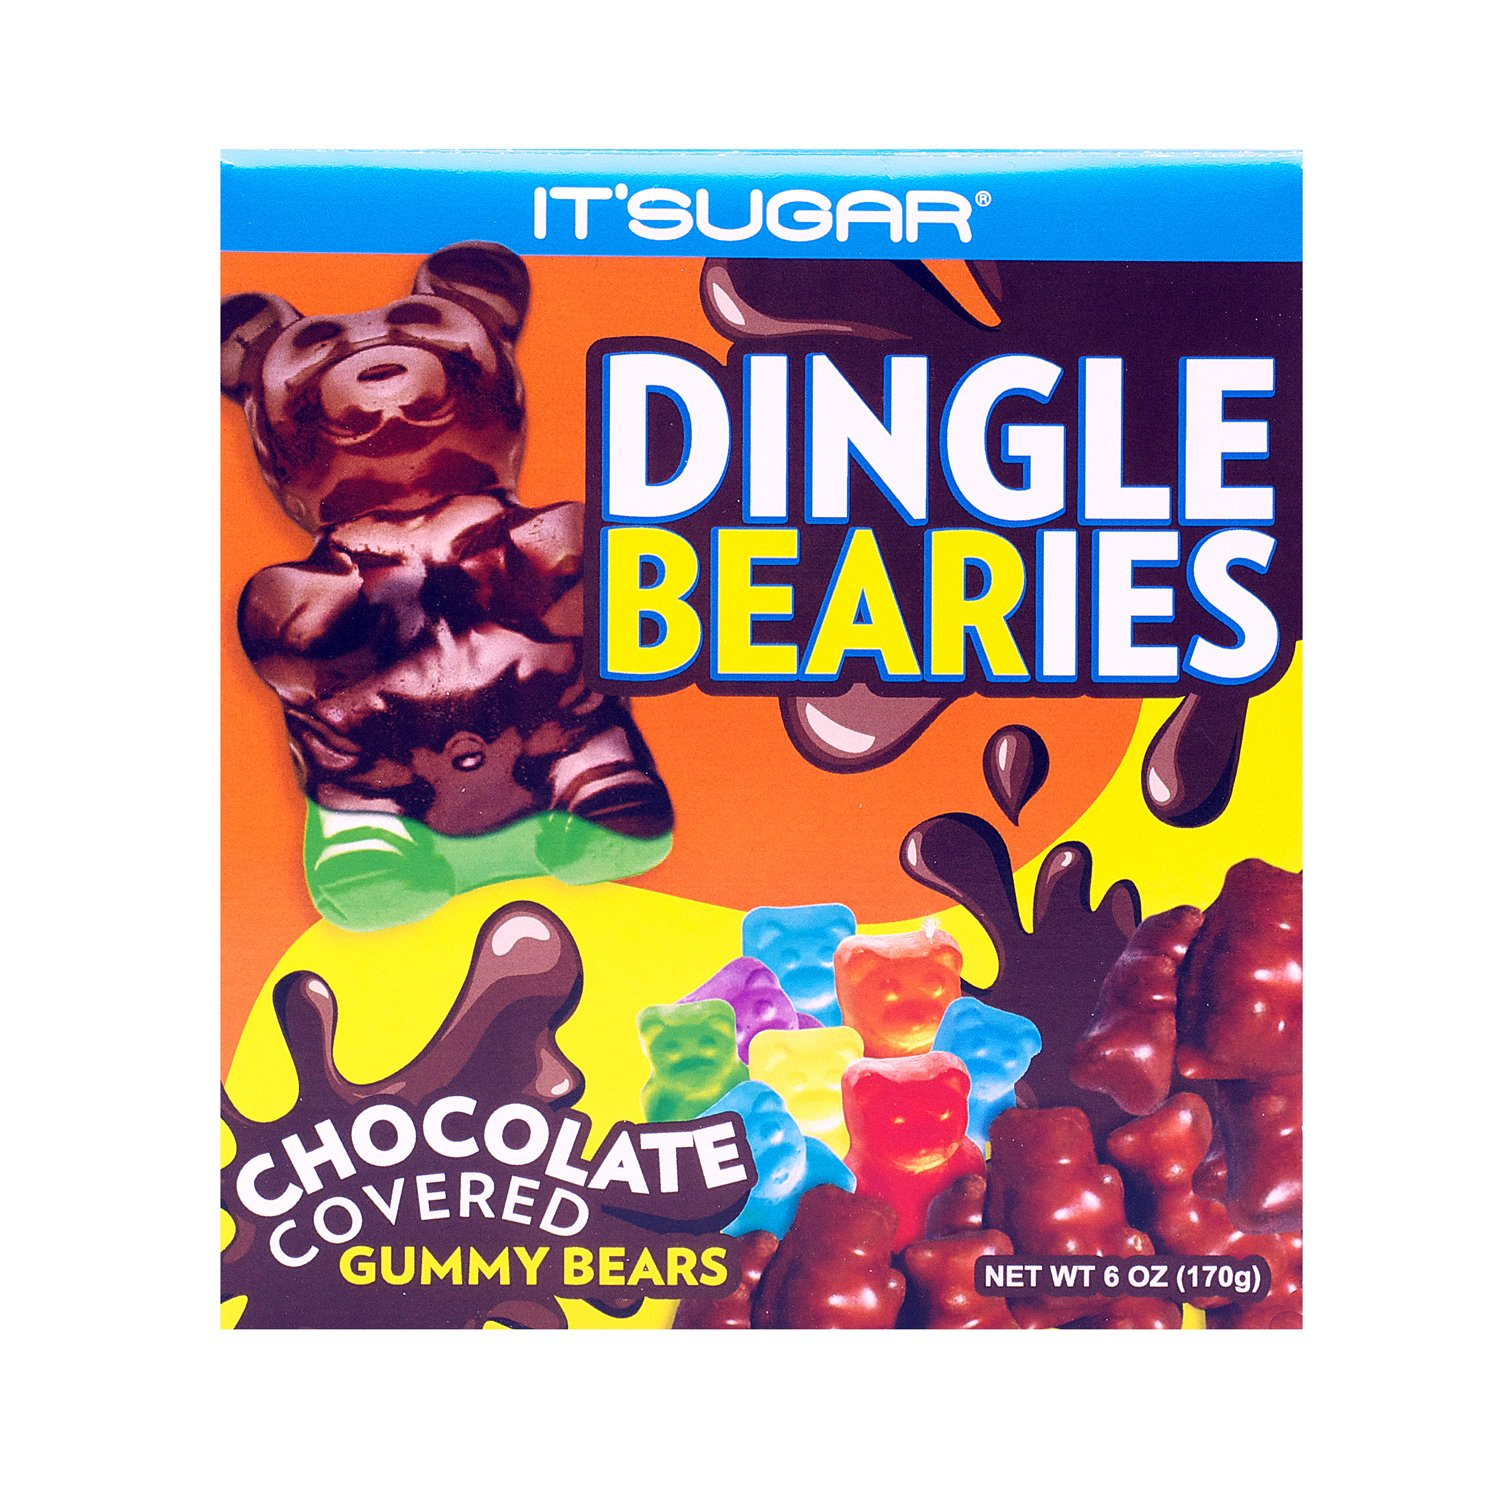 Amazon.com : IT'SUGAR Chocolate Covered Gummy Bears : Grocery ...